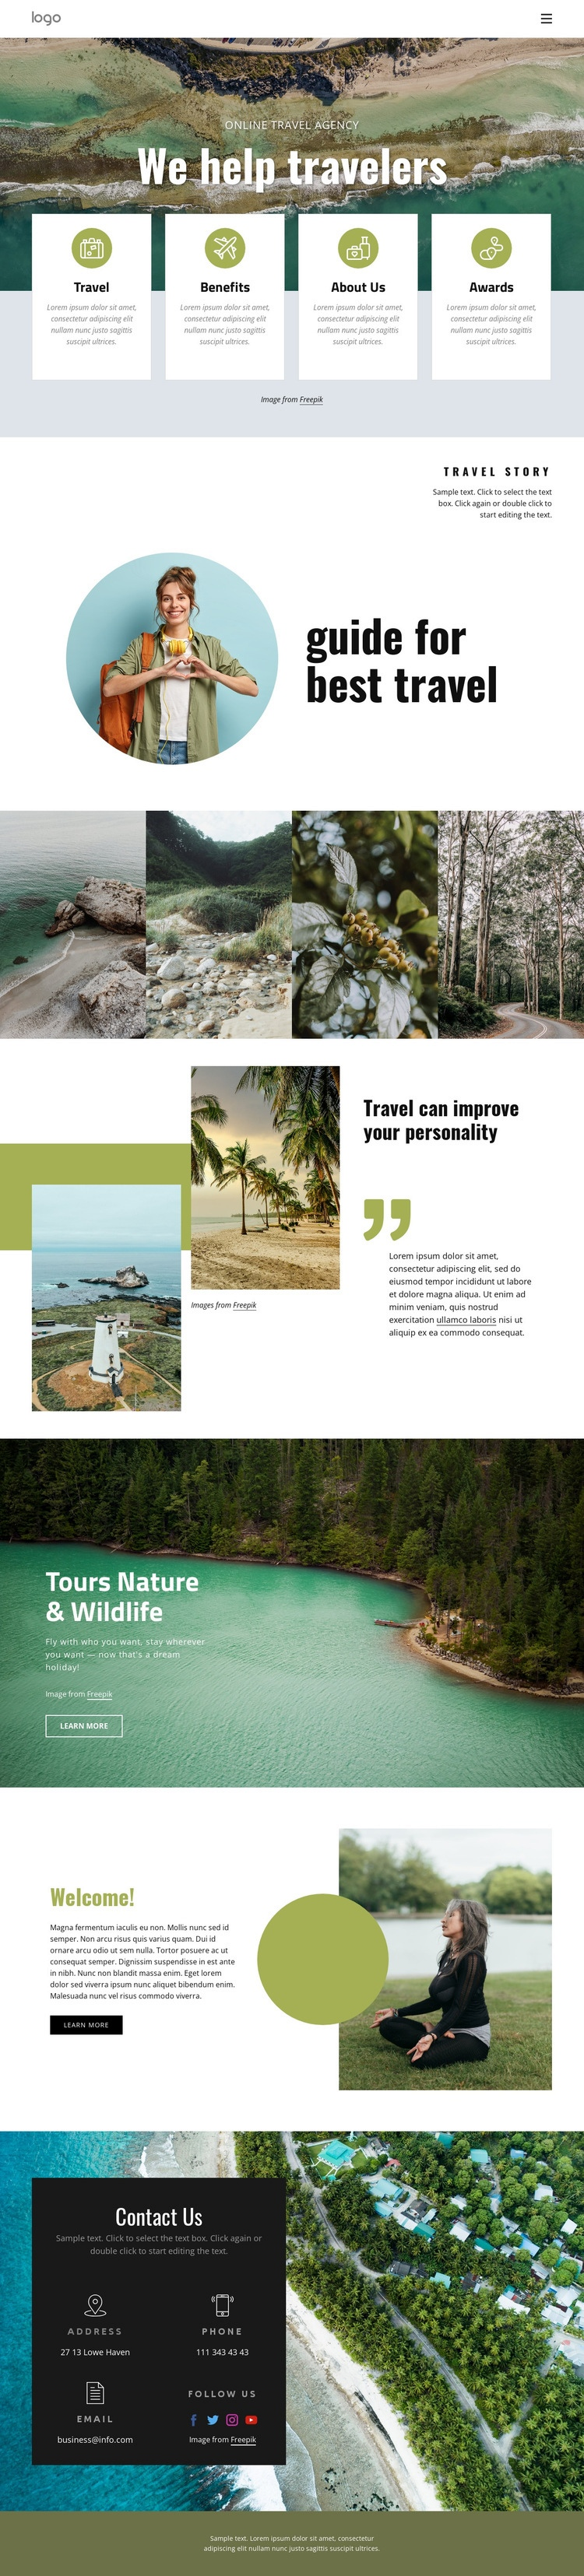 We help manage your trip Html Code Example